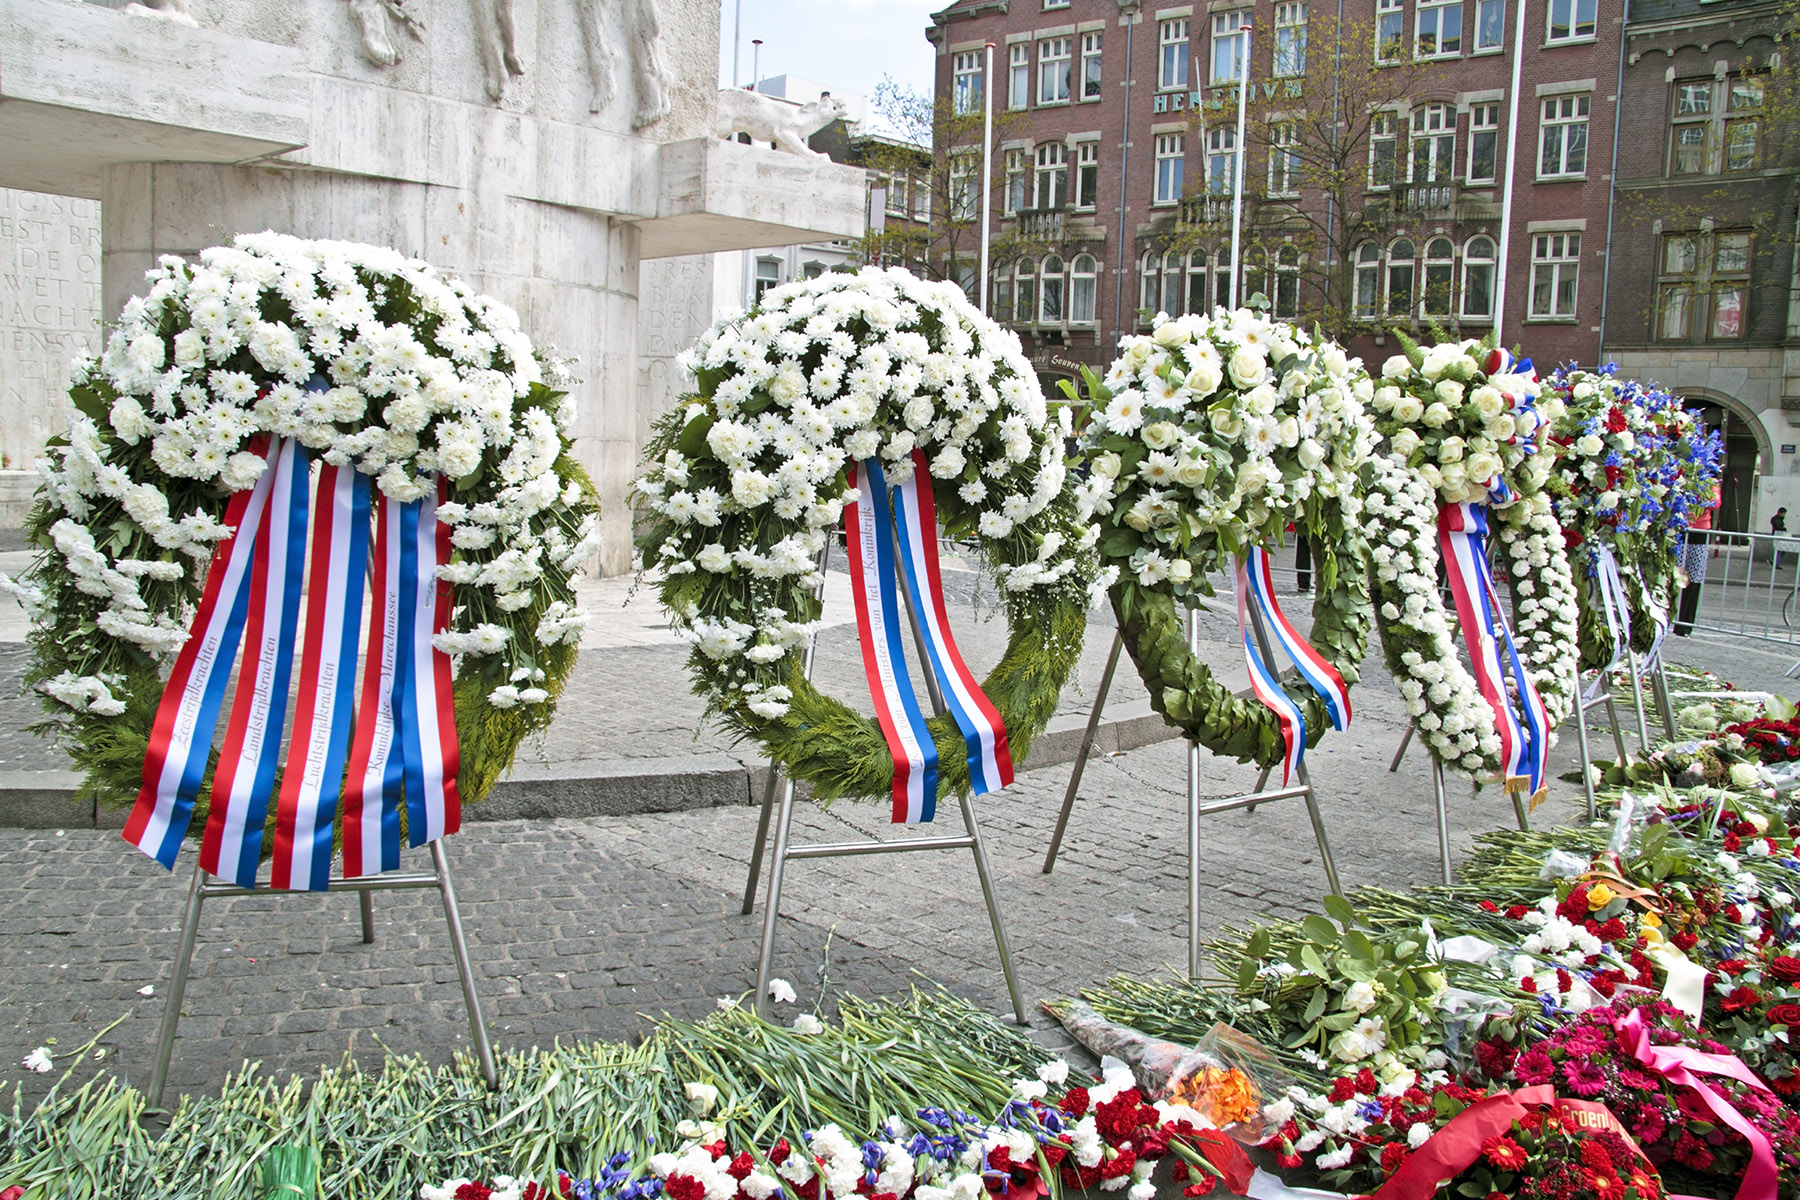 Remembrance Day and Liberation Day in the Netherlands | Expatica